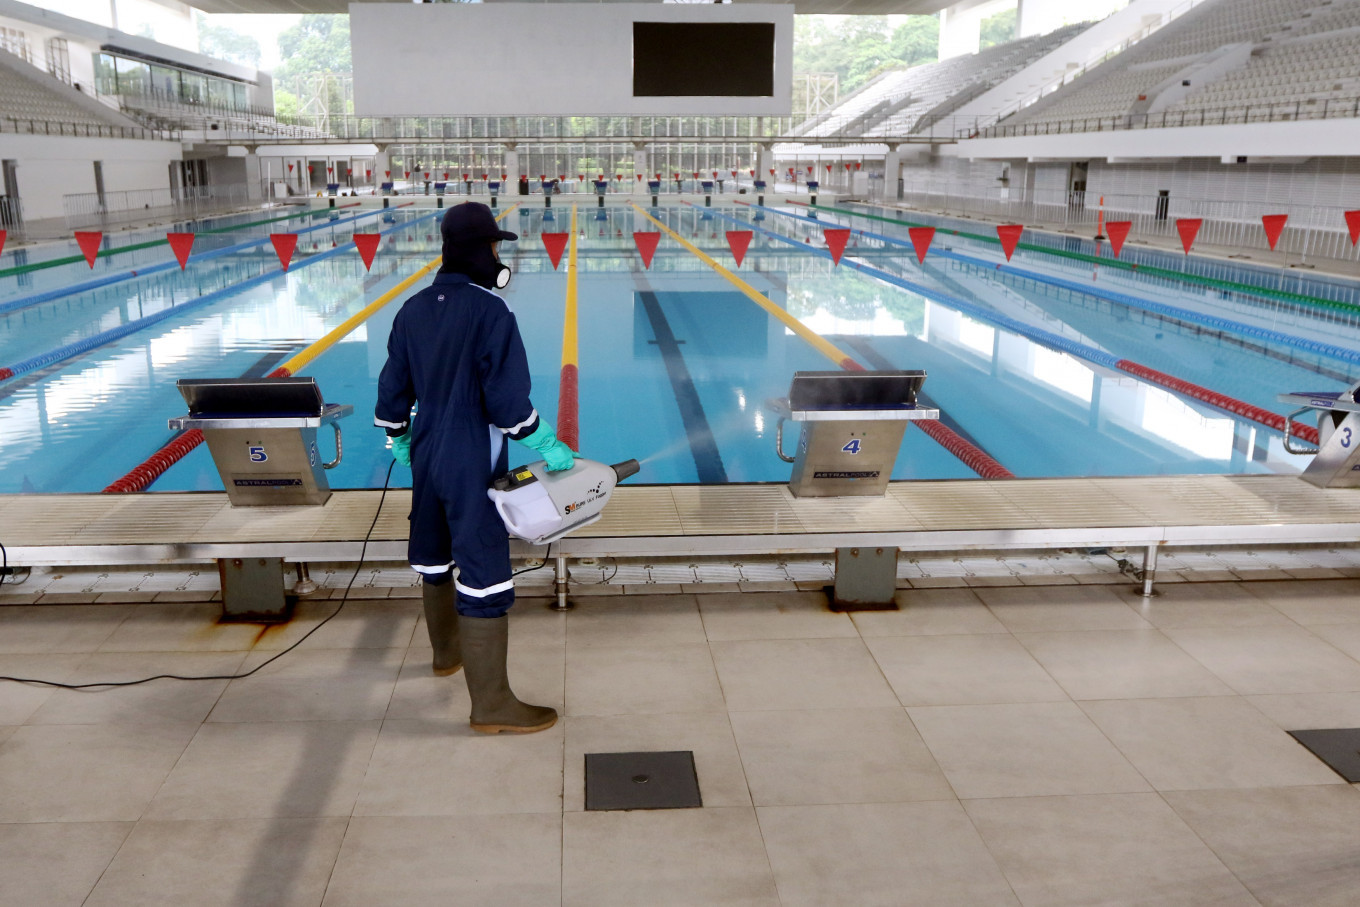 Jakartans give GBK sports complex wide berth in virus crisis